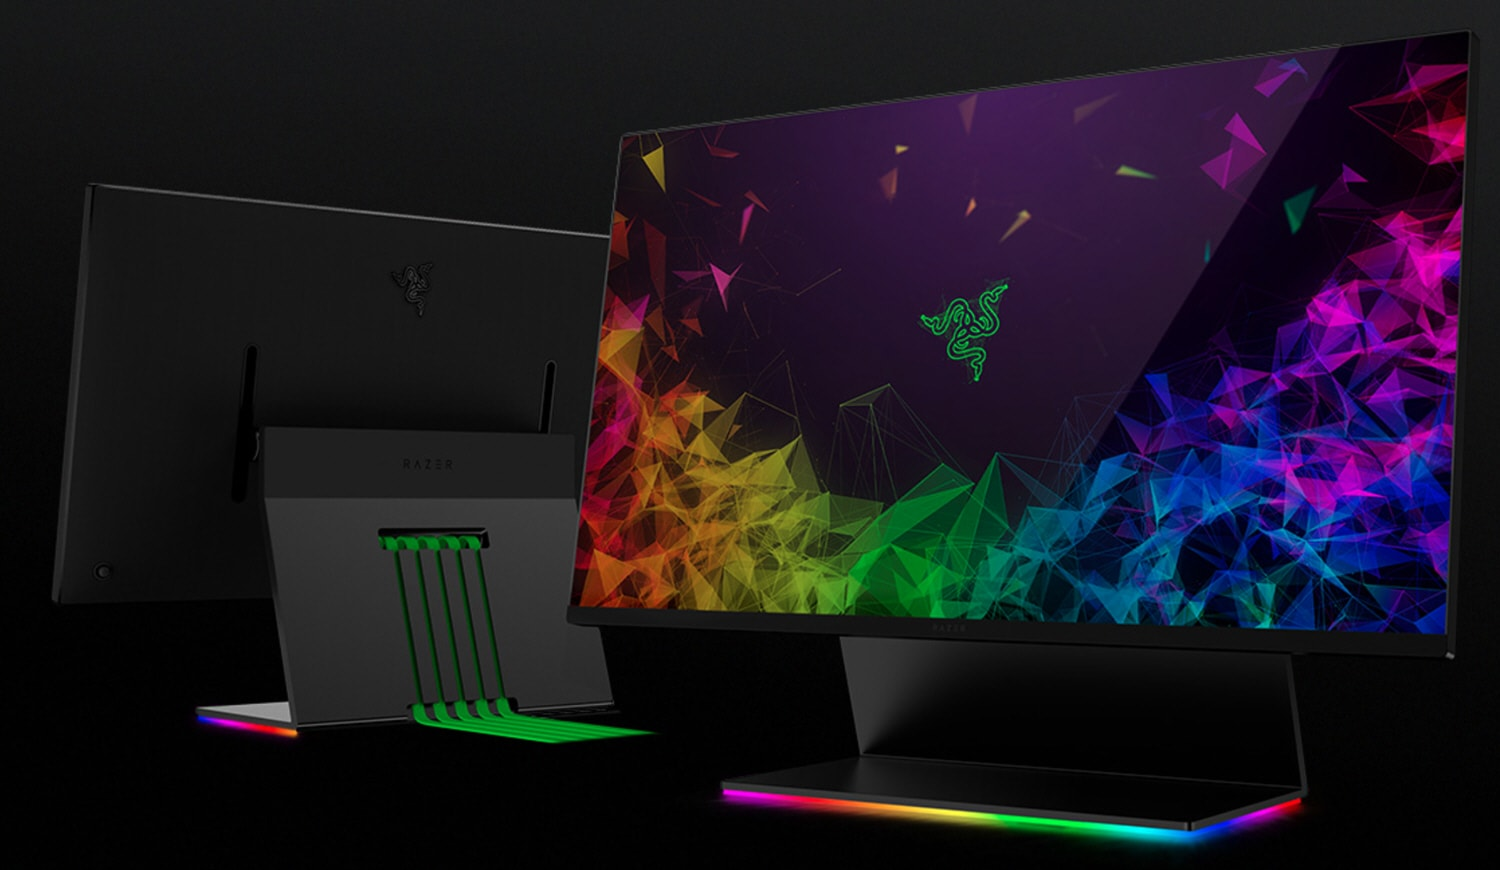 Razer's new Gaming Monitor will support both FreeSync and G-SYNC